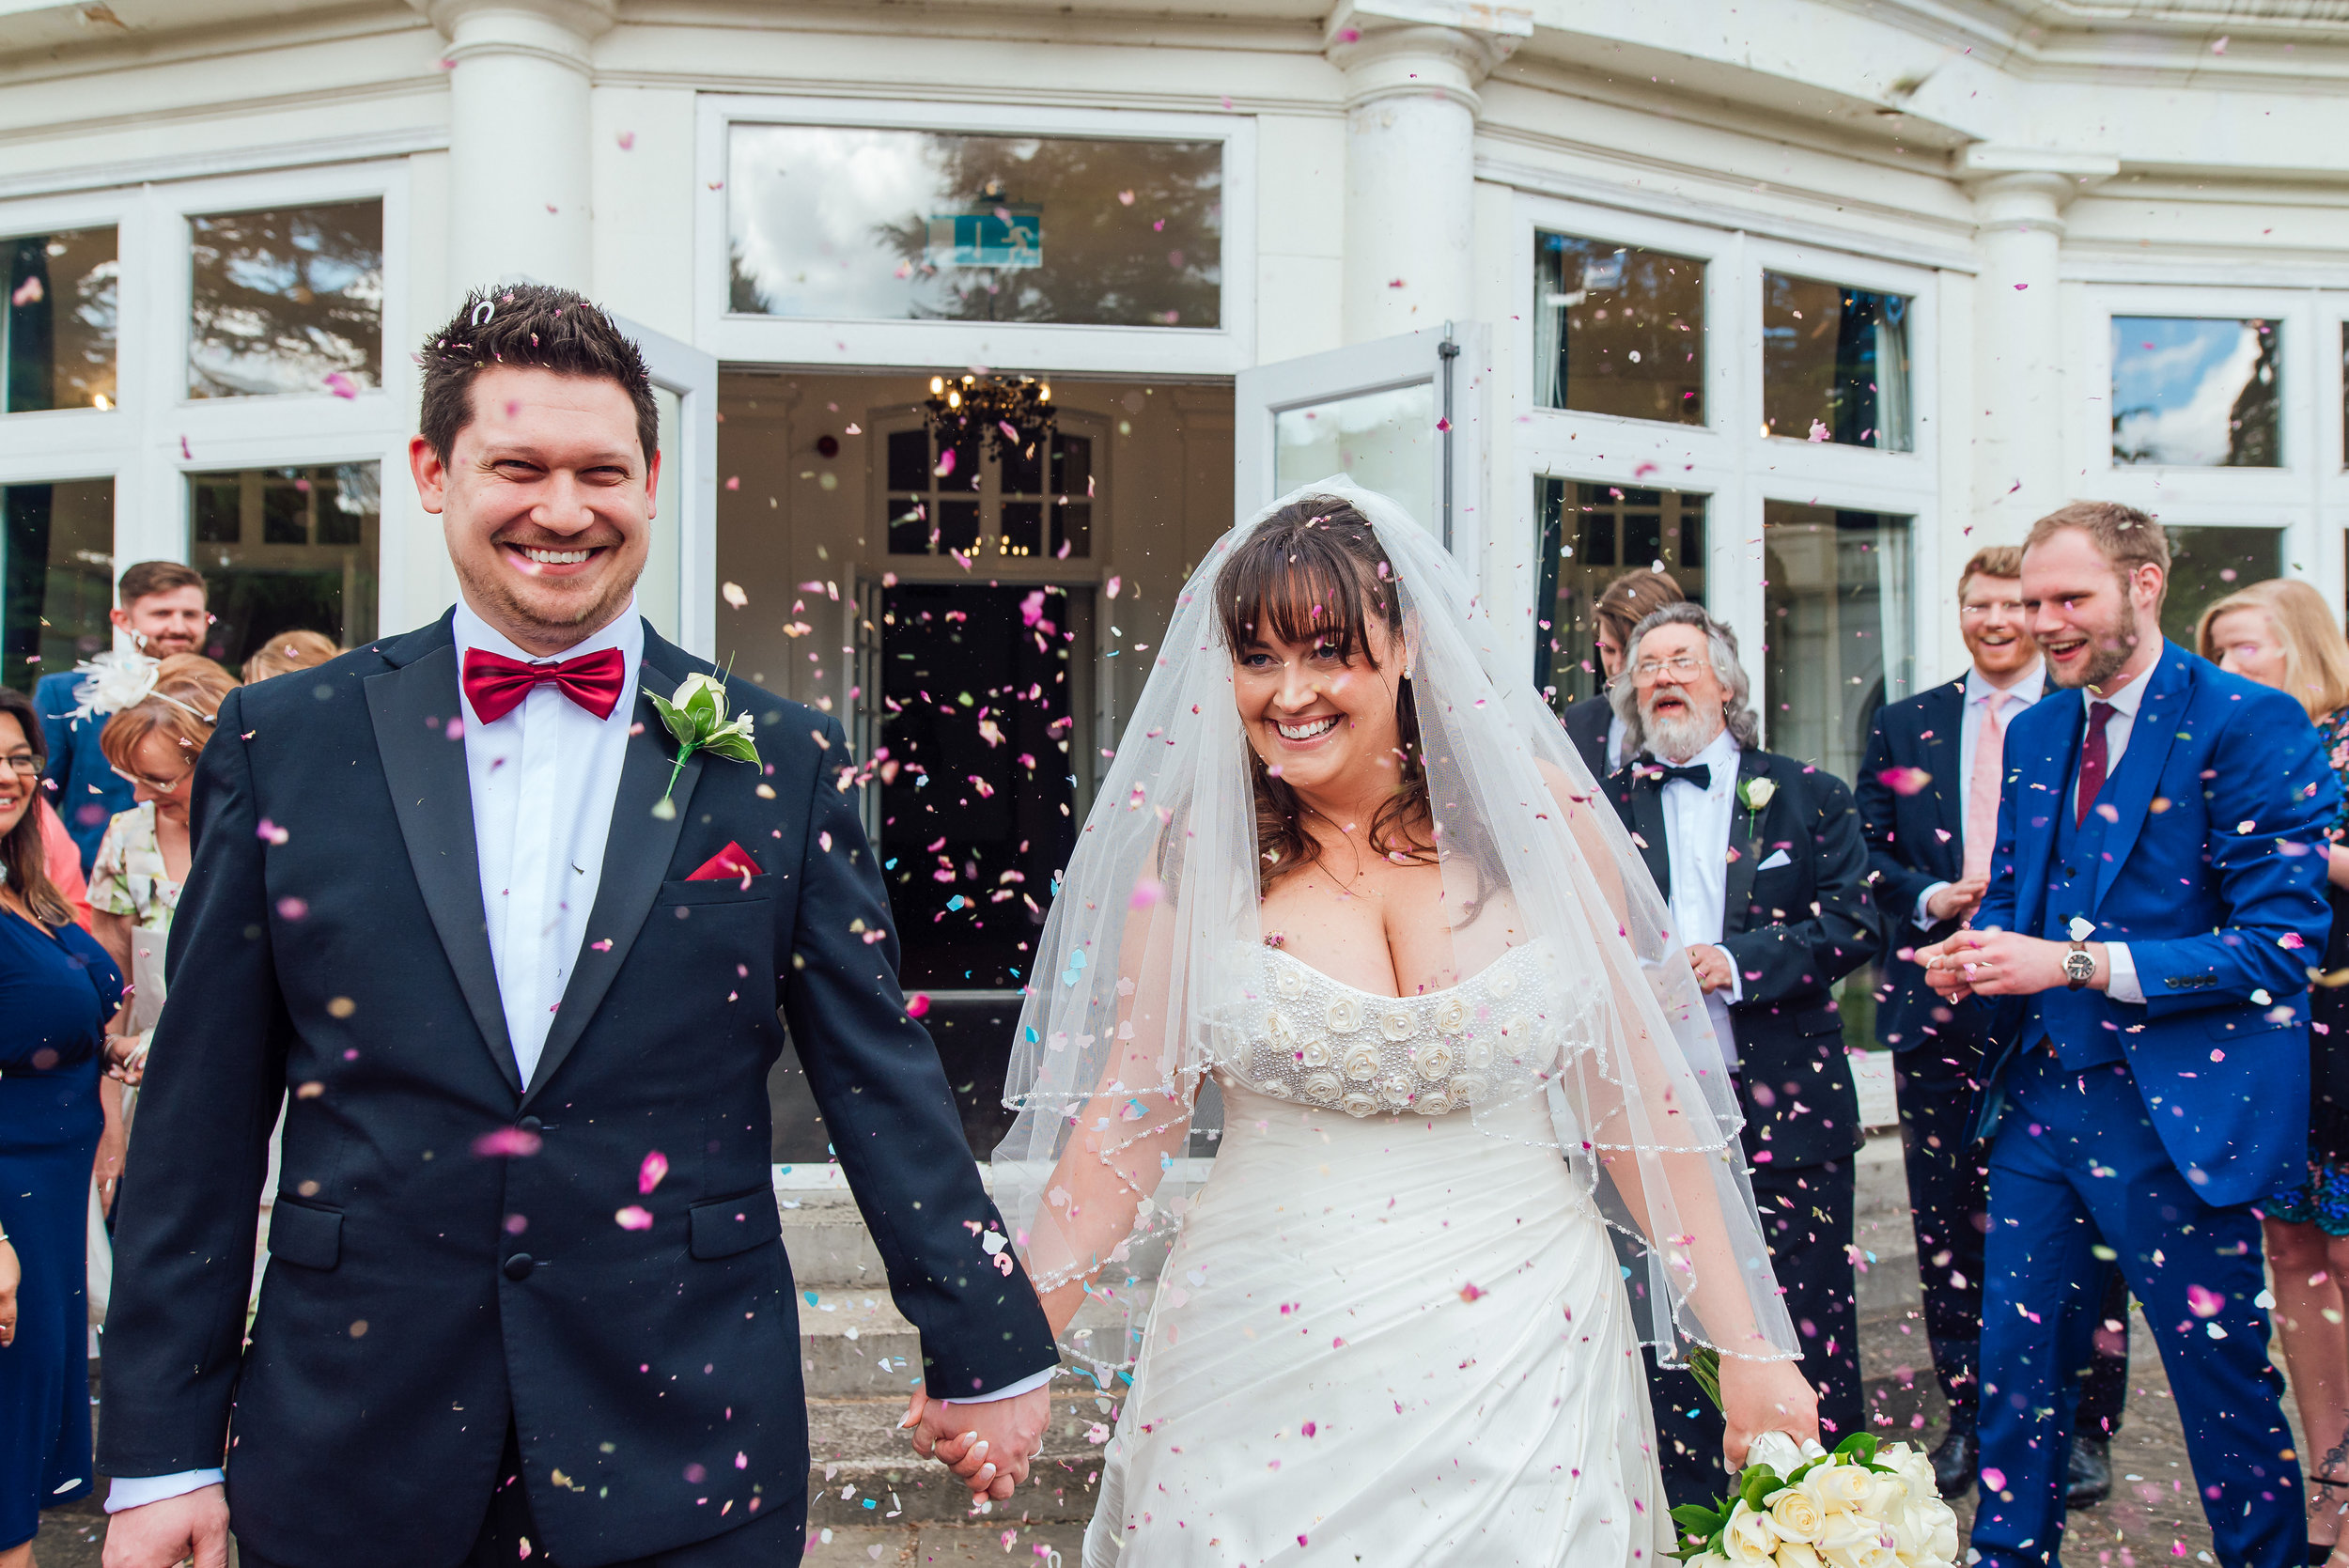 Confetti at Heatherden Hall wedding - Amy James Photography - Wedding photographer hampshire Surrey and Berkshire